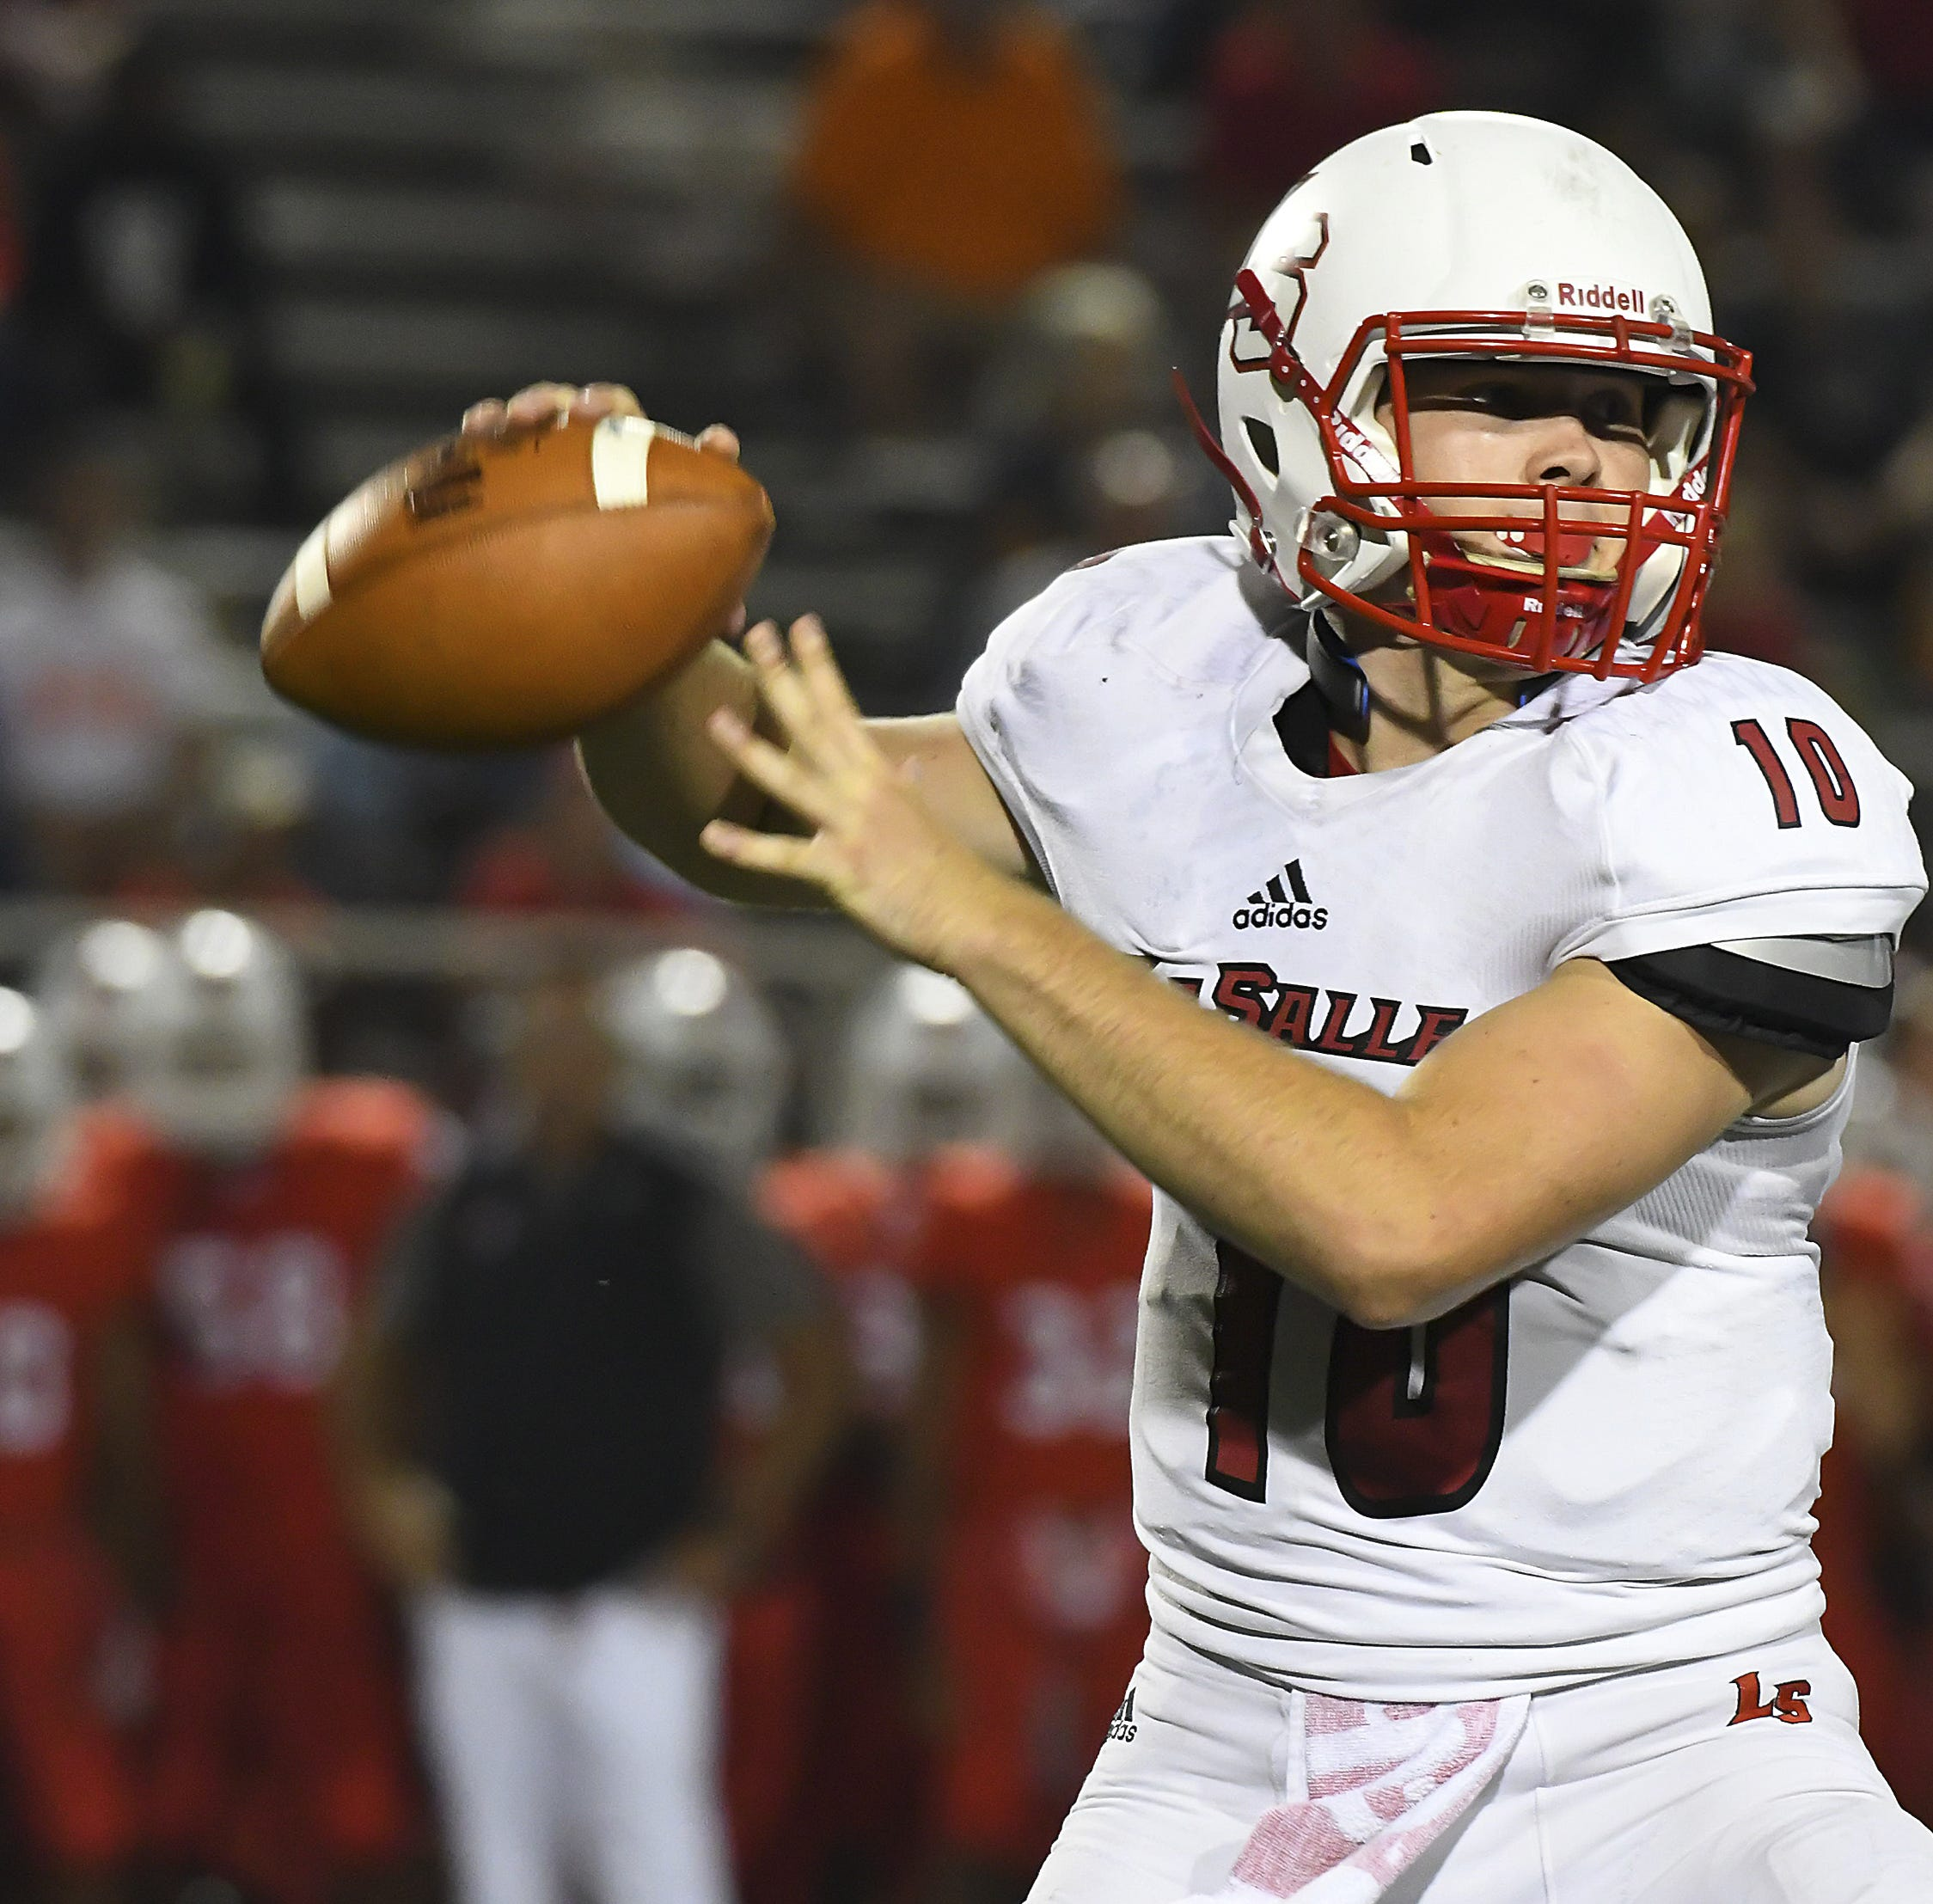 Mother's memory propelled La Salle senior Drew Nieman: 'I could feel her presence with me'